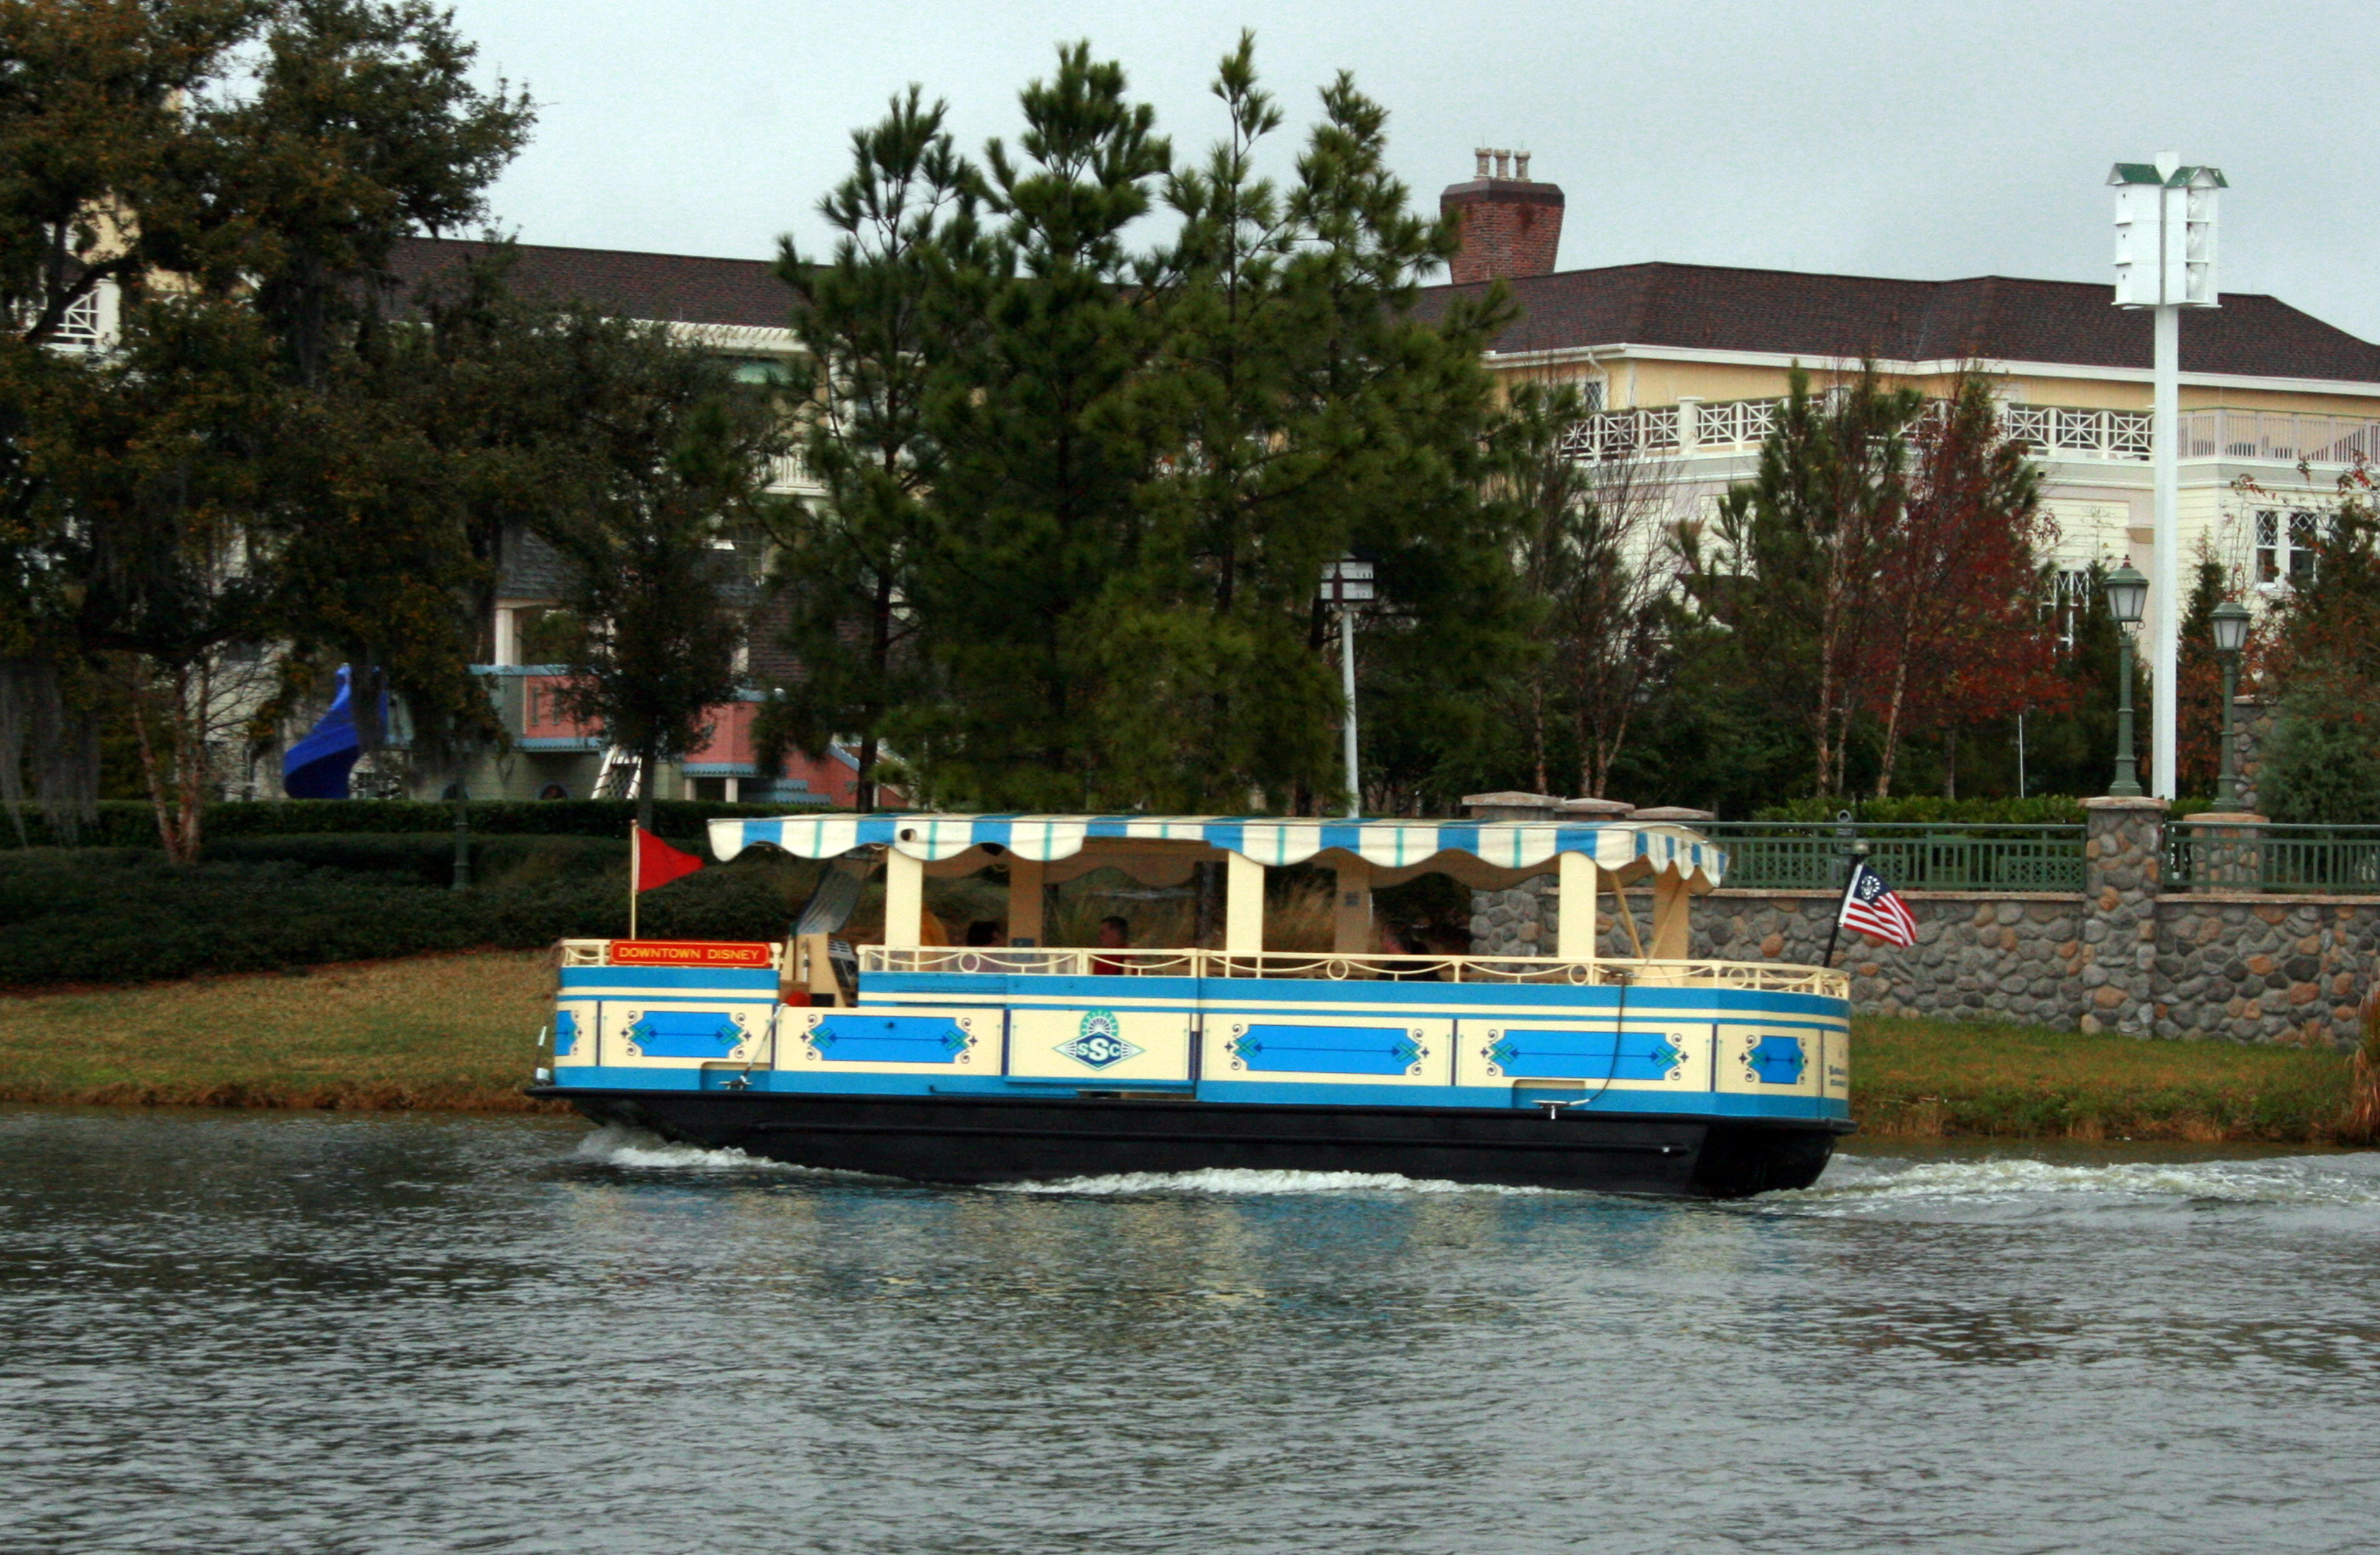 Downtown Disney Boat Tour